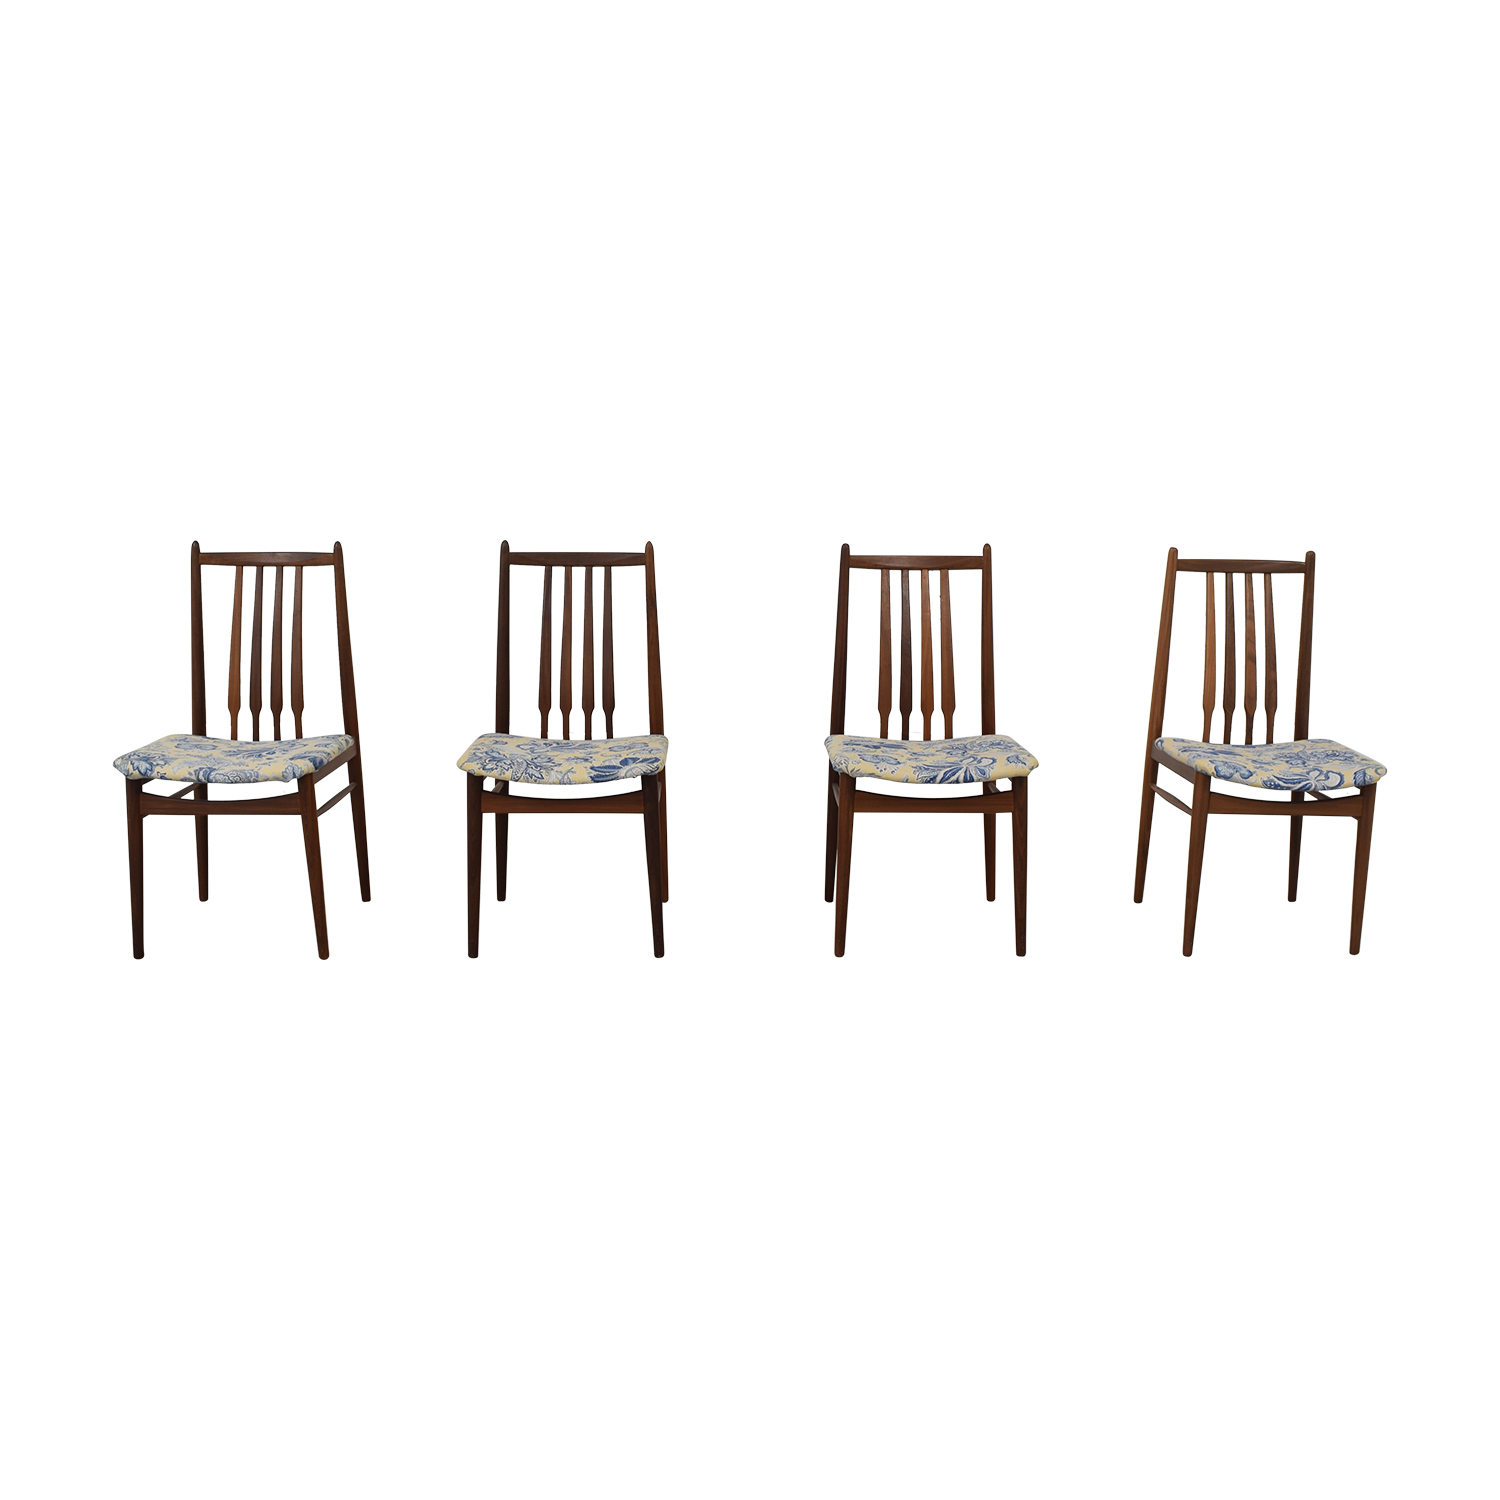 Scandinavian Wooden Chairs / Chairs